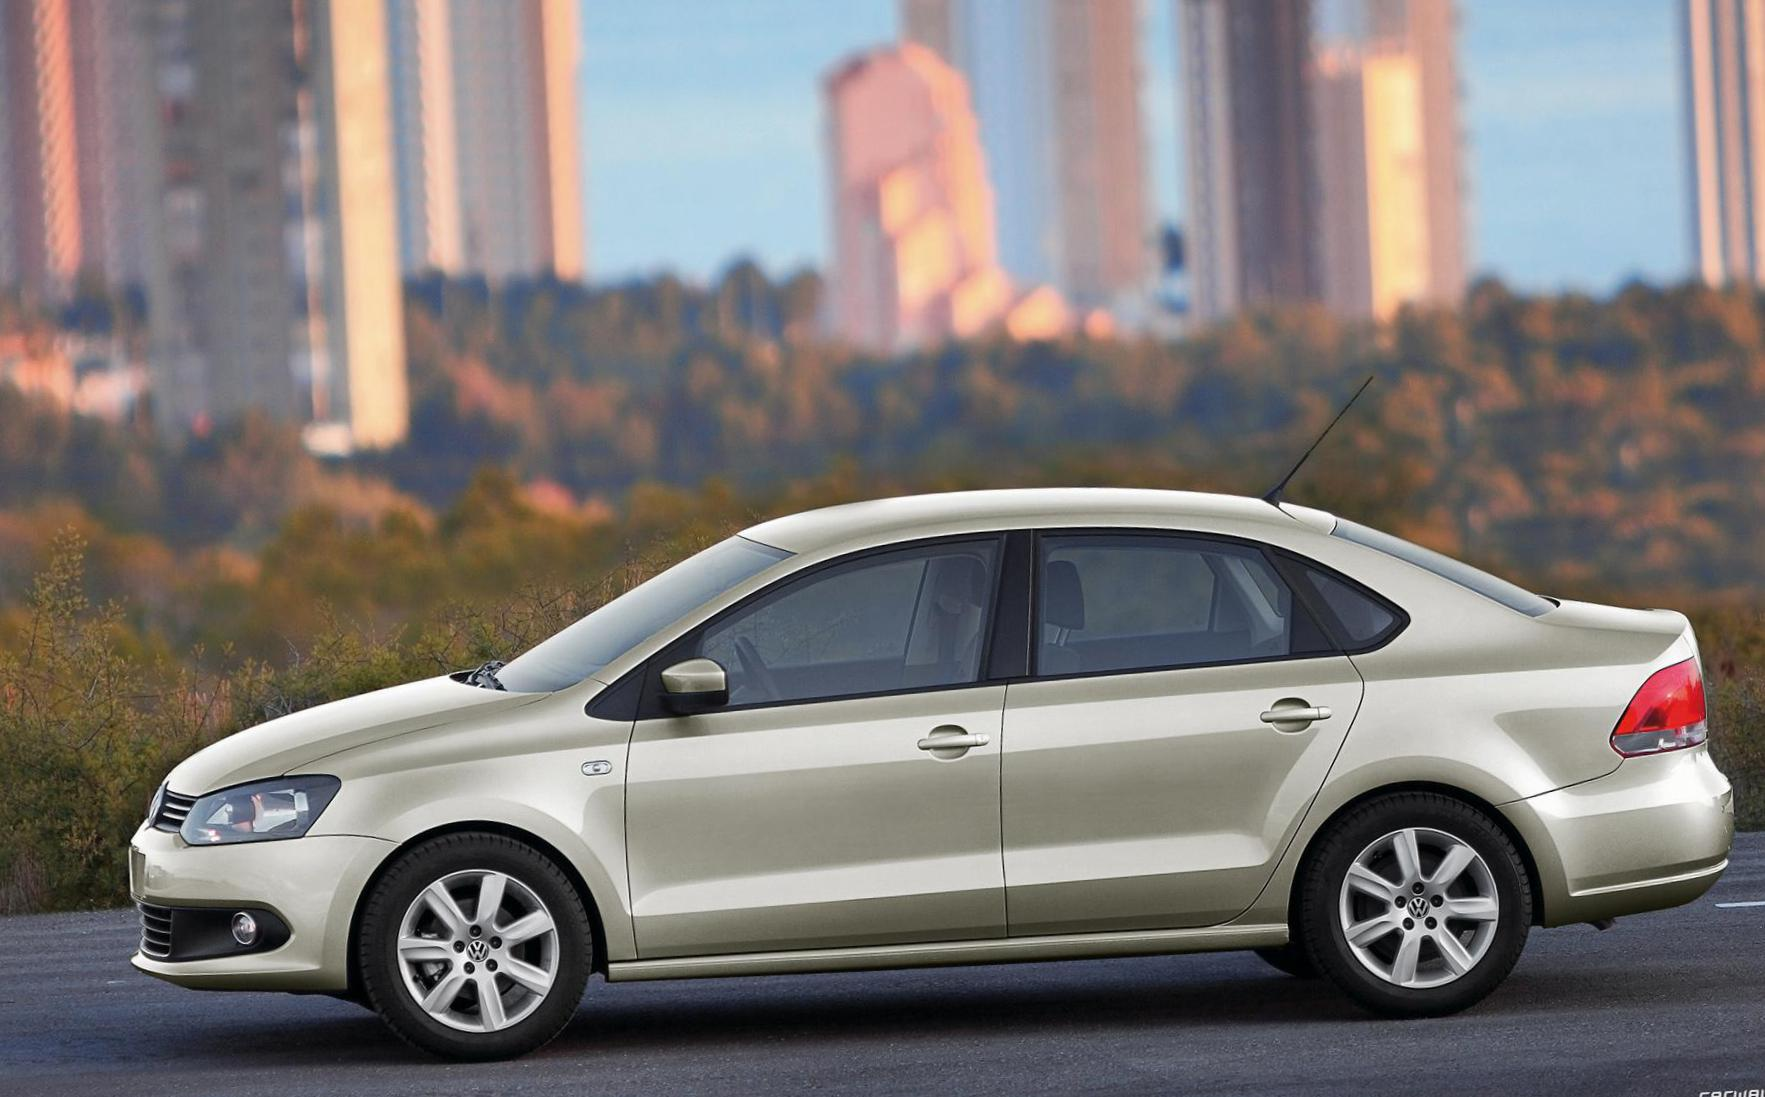 Polo Sedan Volkswagen lease 2011